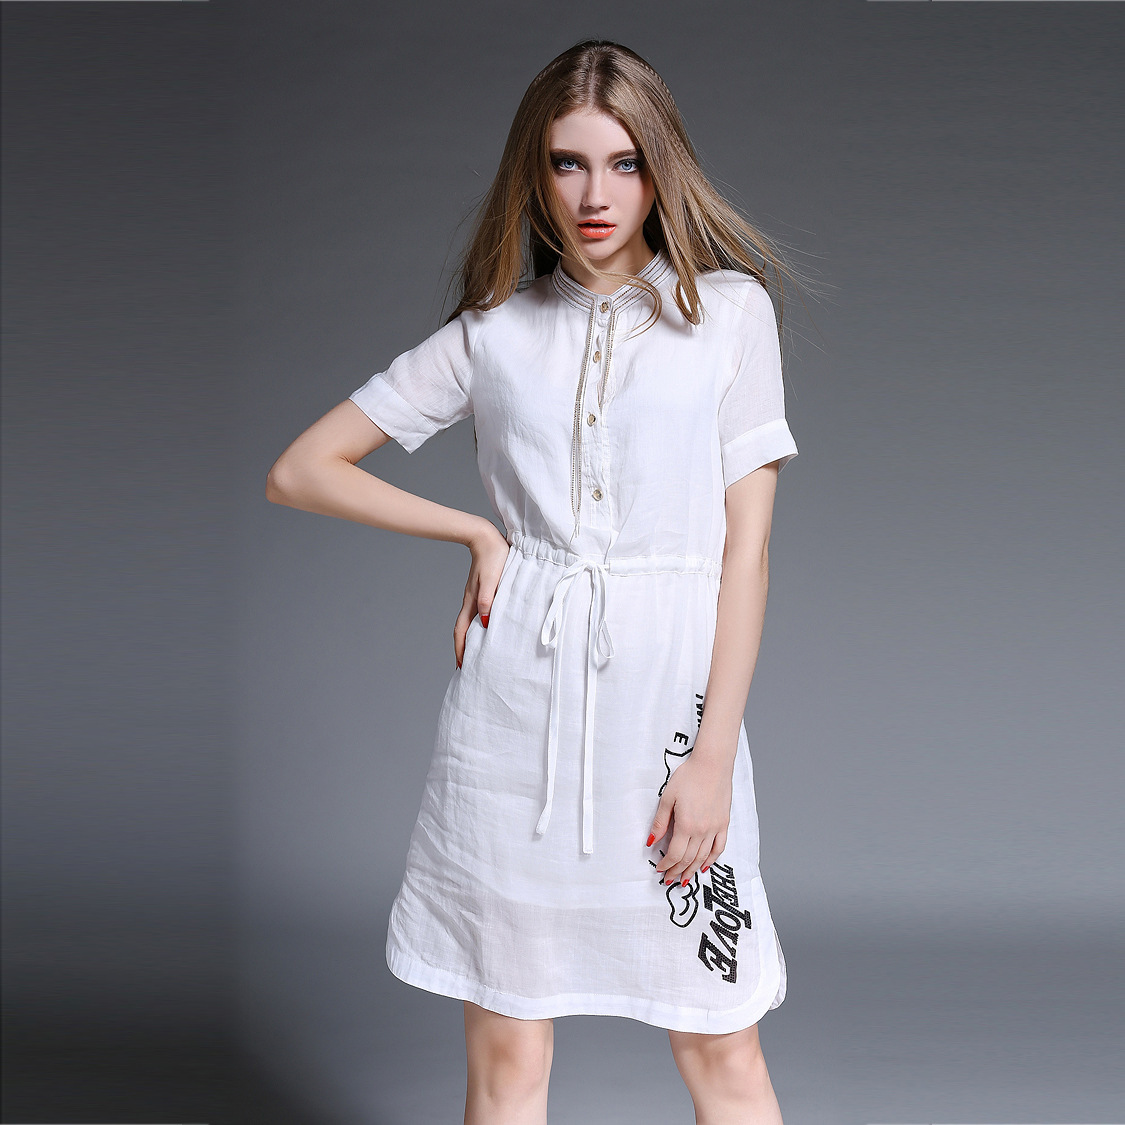 Early autumn 2015 women's casual fashion runway style ...